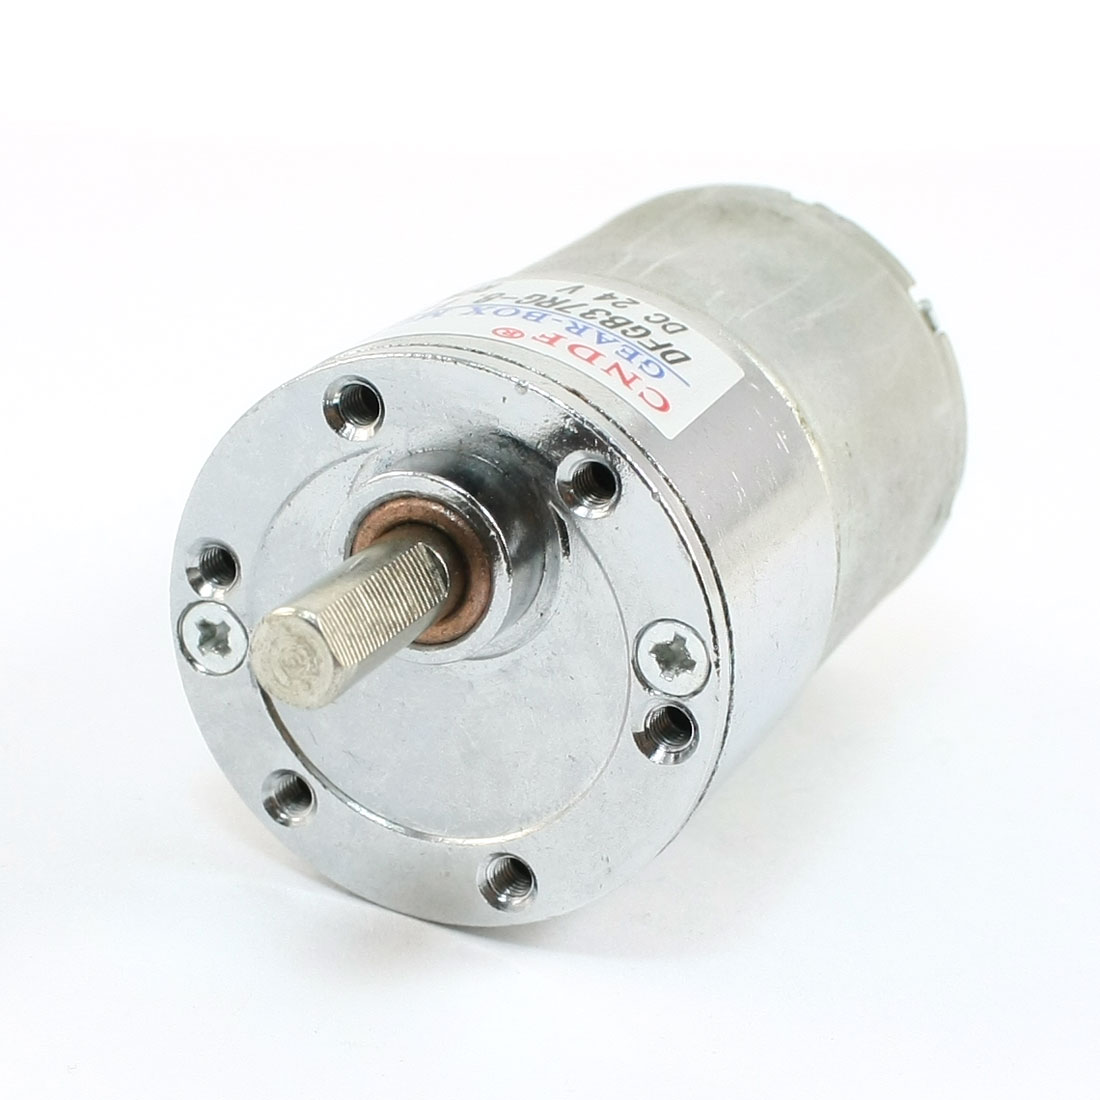 DFGB37RG-8.1i Cylinder Shape DC24V Speed 500RPM Geared Motor